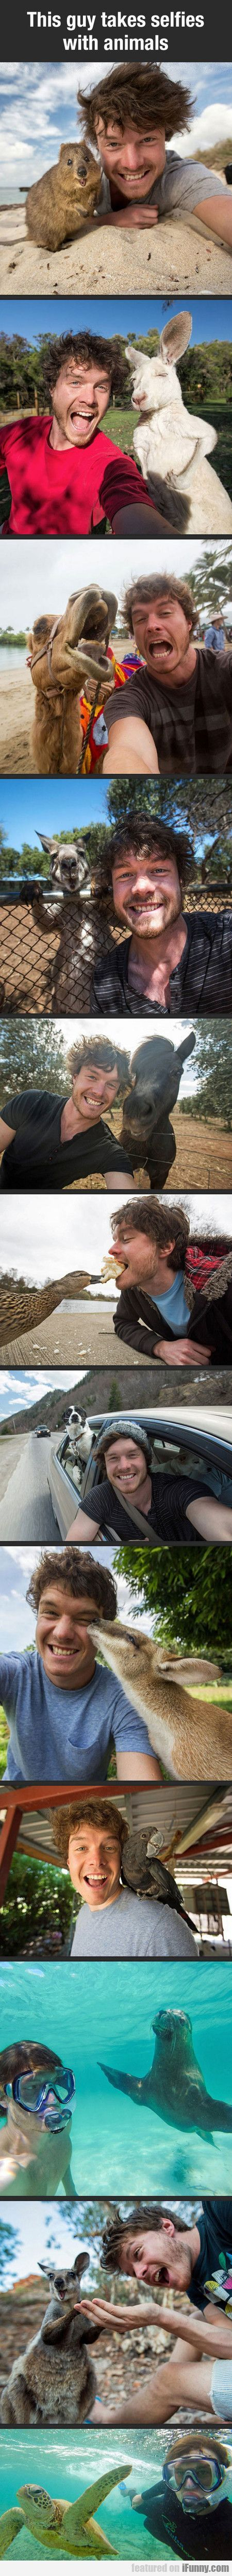 This Guy Takes Selfies With Animals #Funny-Pics www.flaproduction...